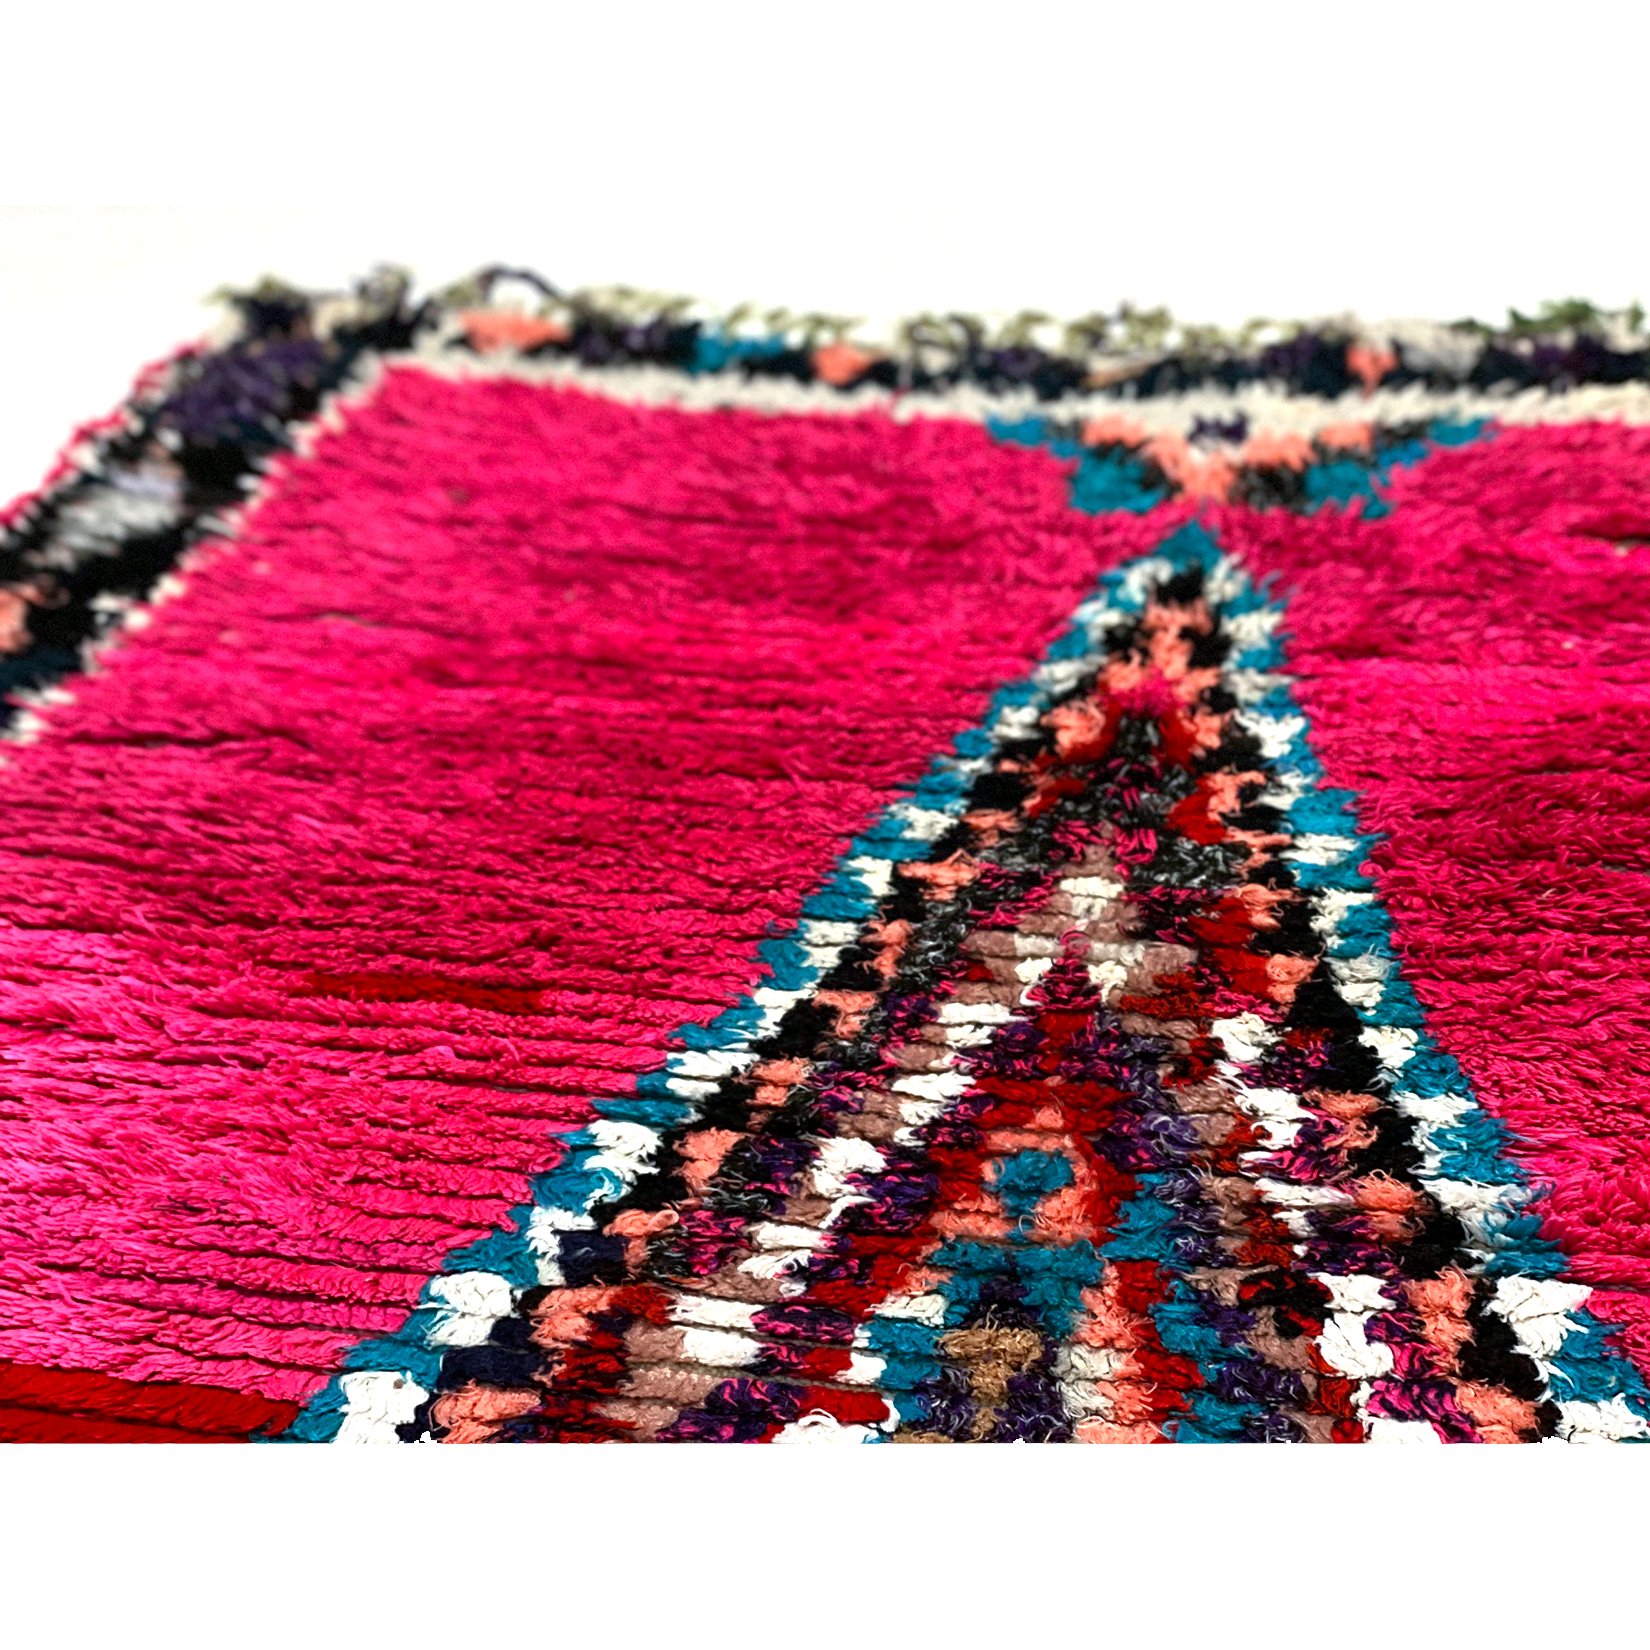 Pink Moroccan entryway rug with colorful details - Kantara | Moroccan Rugs